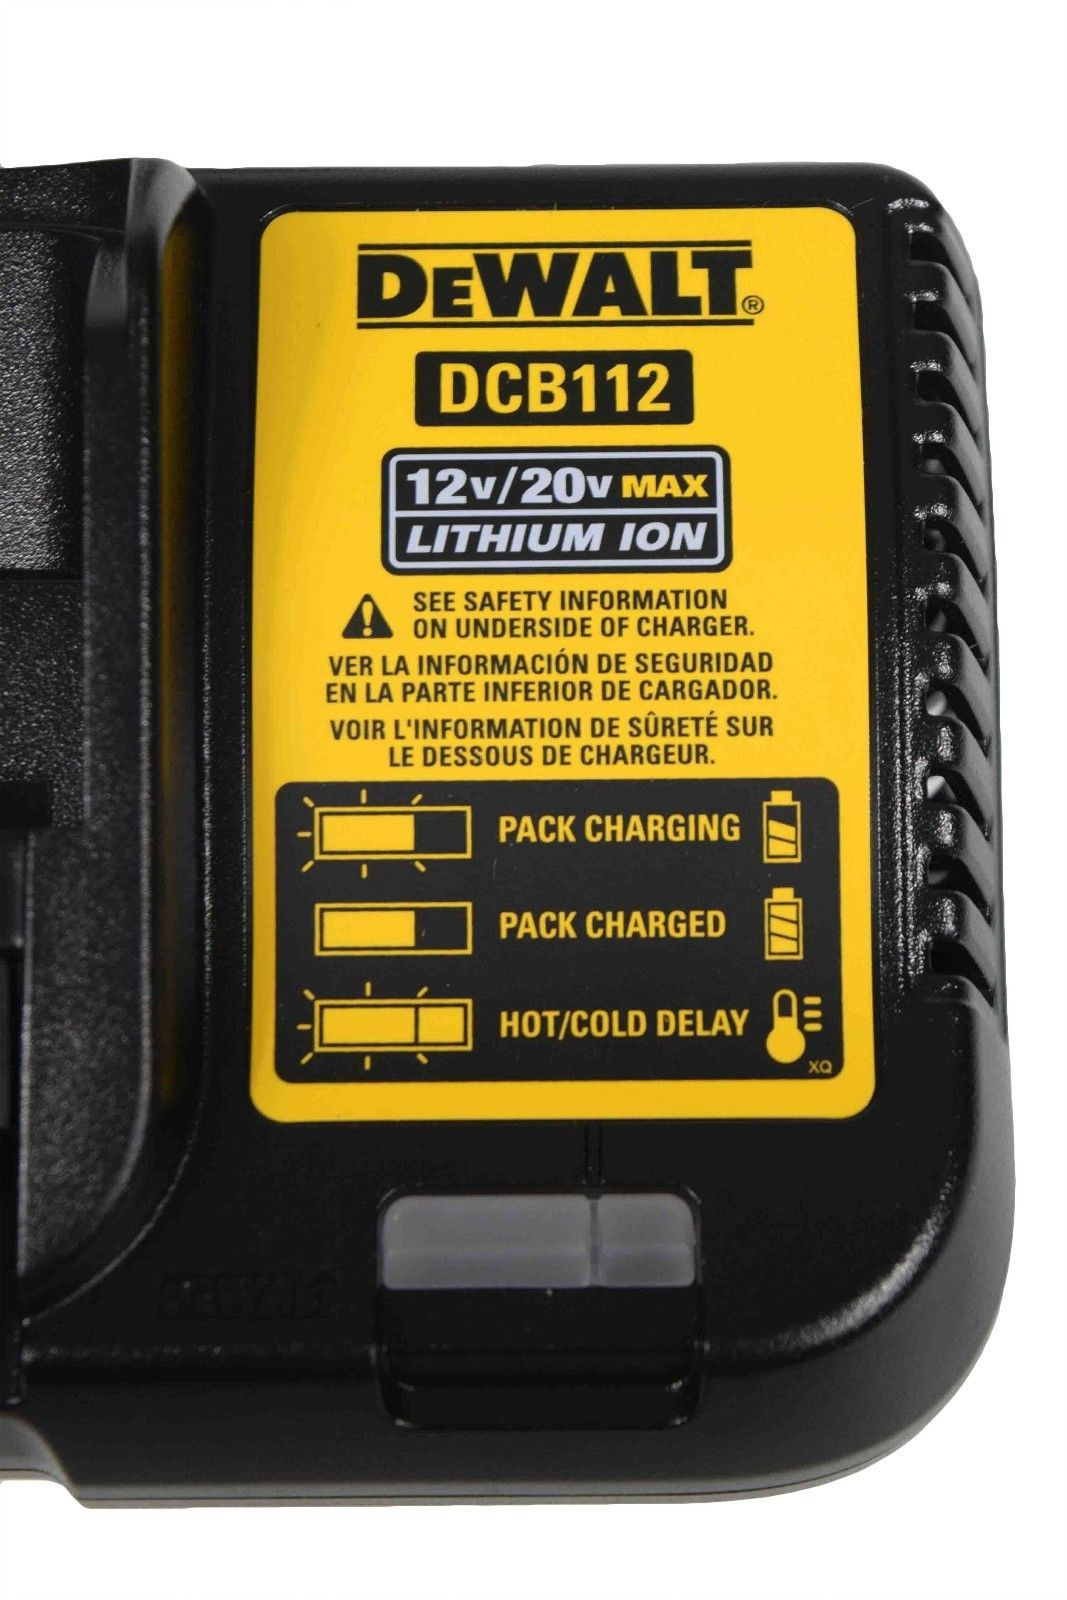 Dewalt-DCB112-NBX-20V-Lithium-Ion-Battery-Charger-image-4